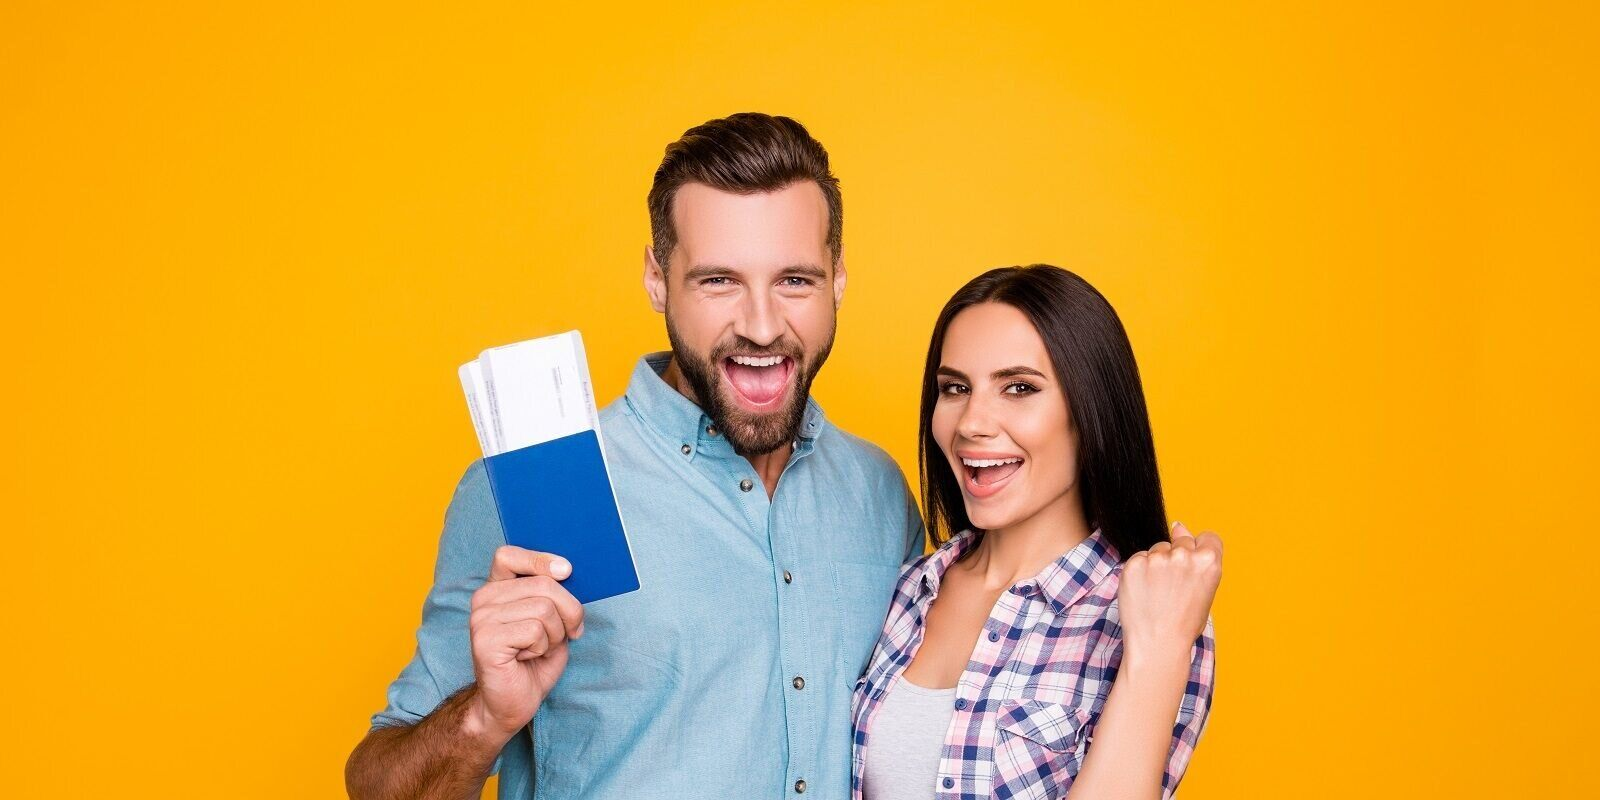 lucky couple getting ir1 visa after long processing time